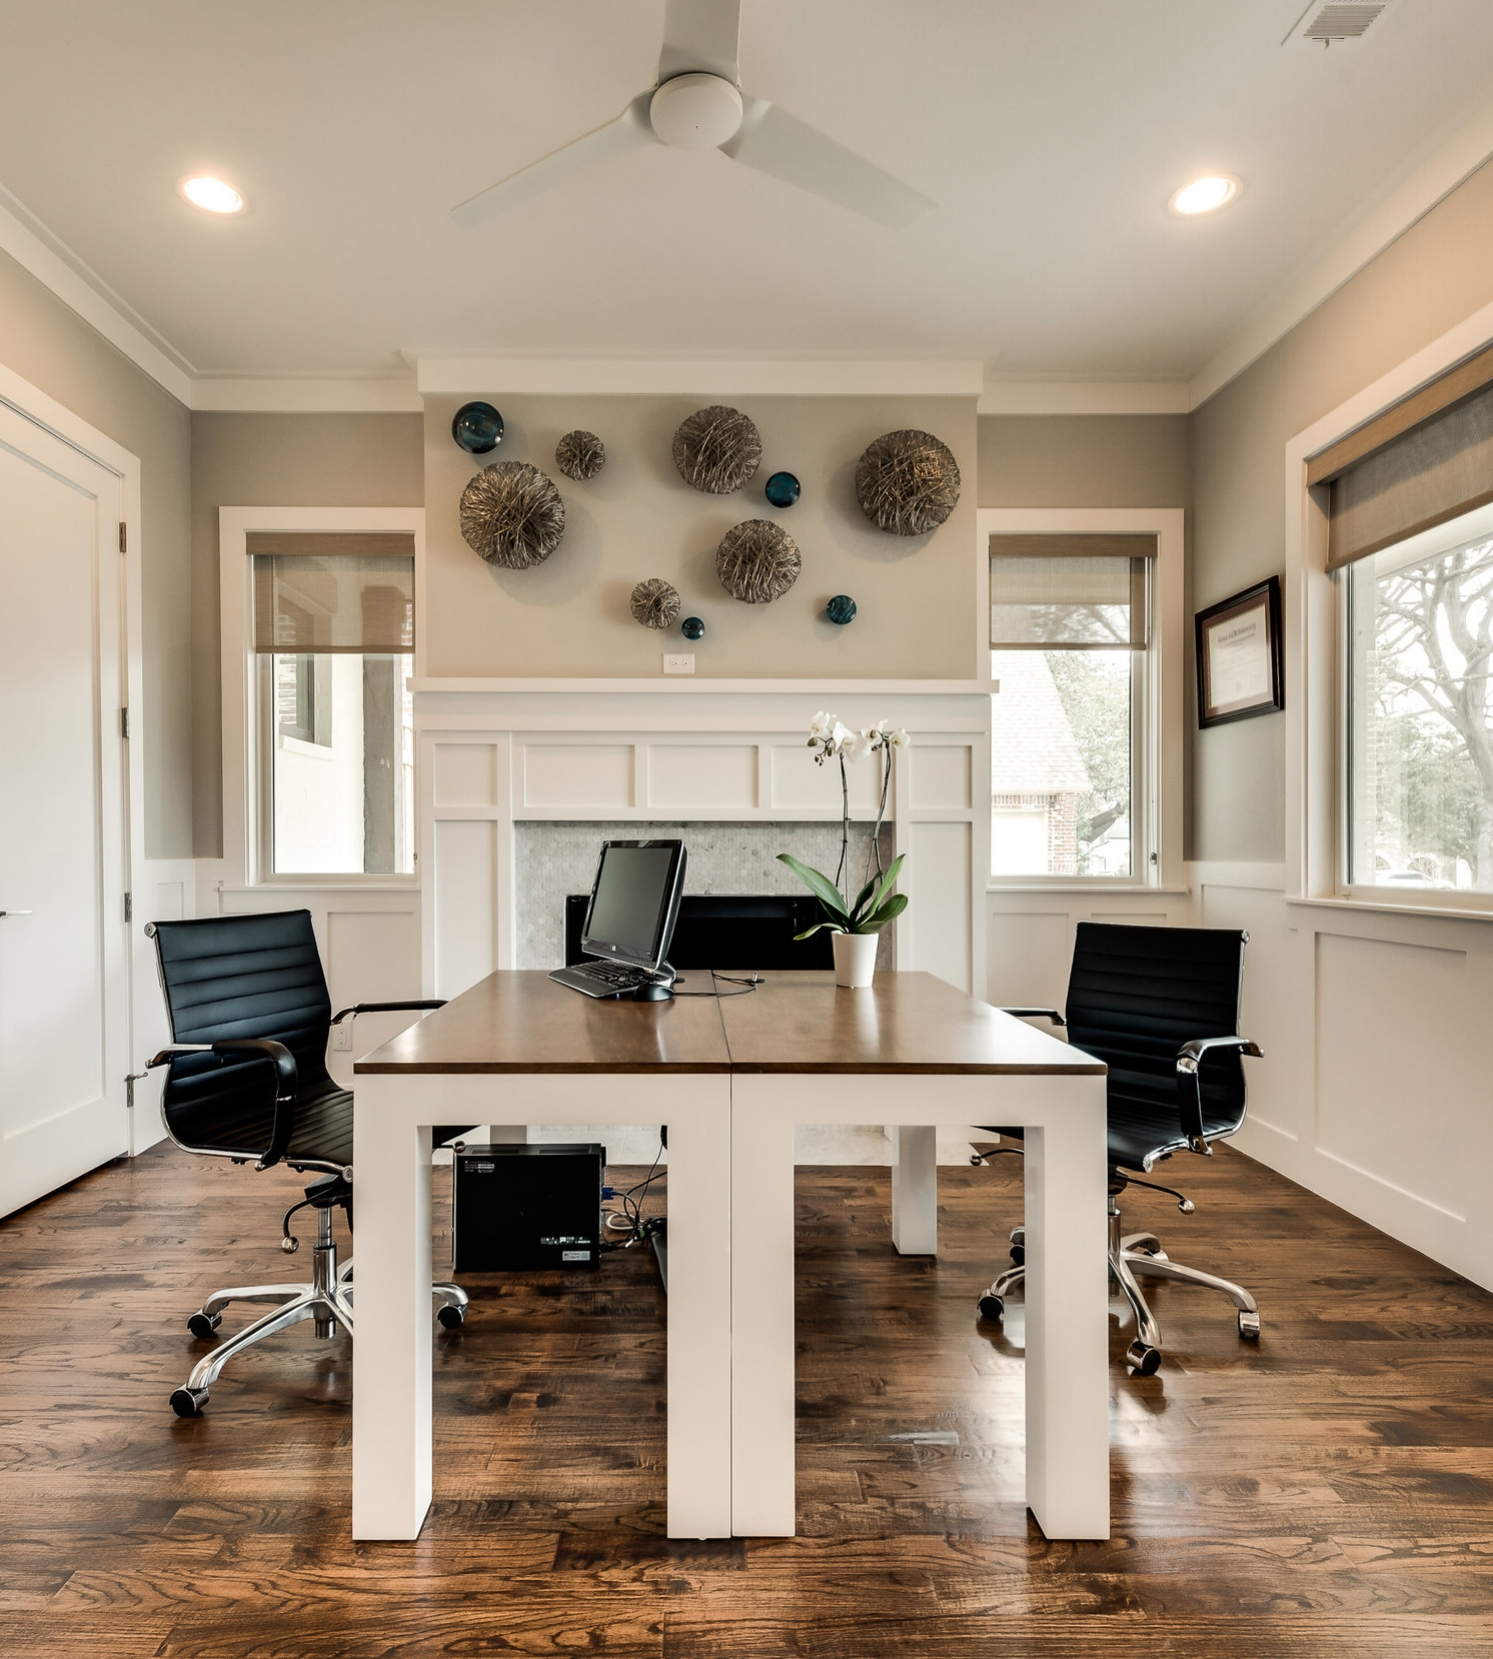 Creating a beautifuly place to work at home can make the late night conference calls a little bit less of a hassle.